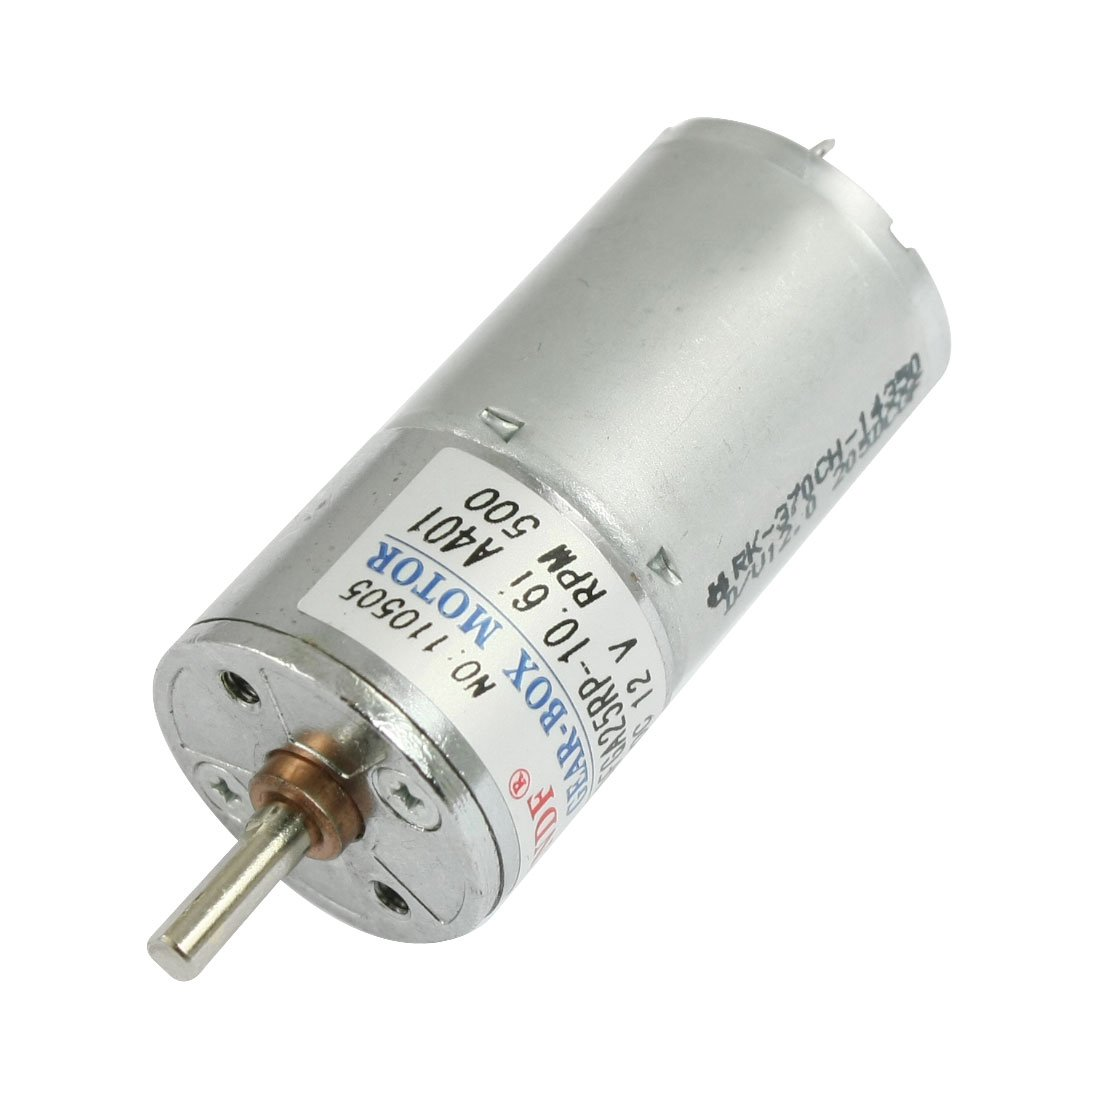 uxcell DC 12V 45mA 500RPM 0.33Kg-cm High Torque Permanent Magnetic Gear Motor by uxcell (Image #1)